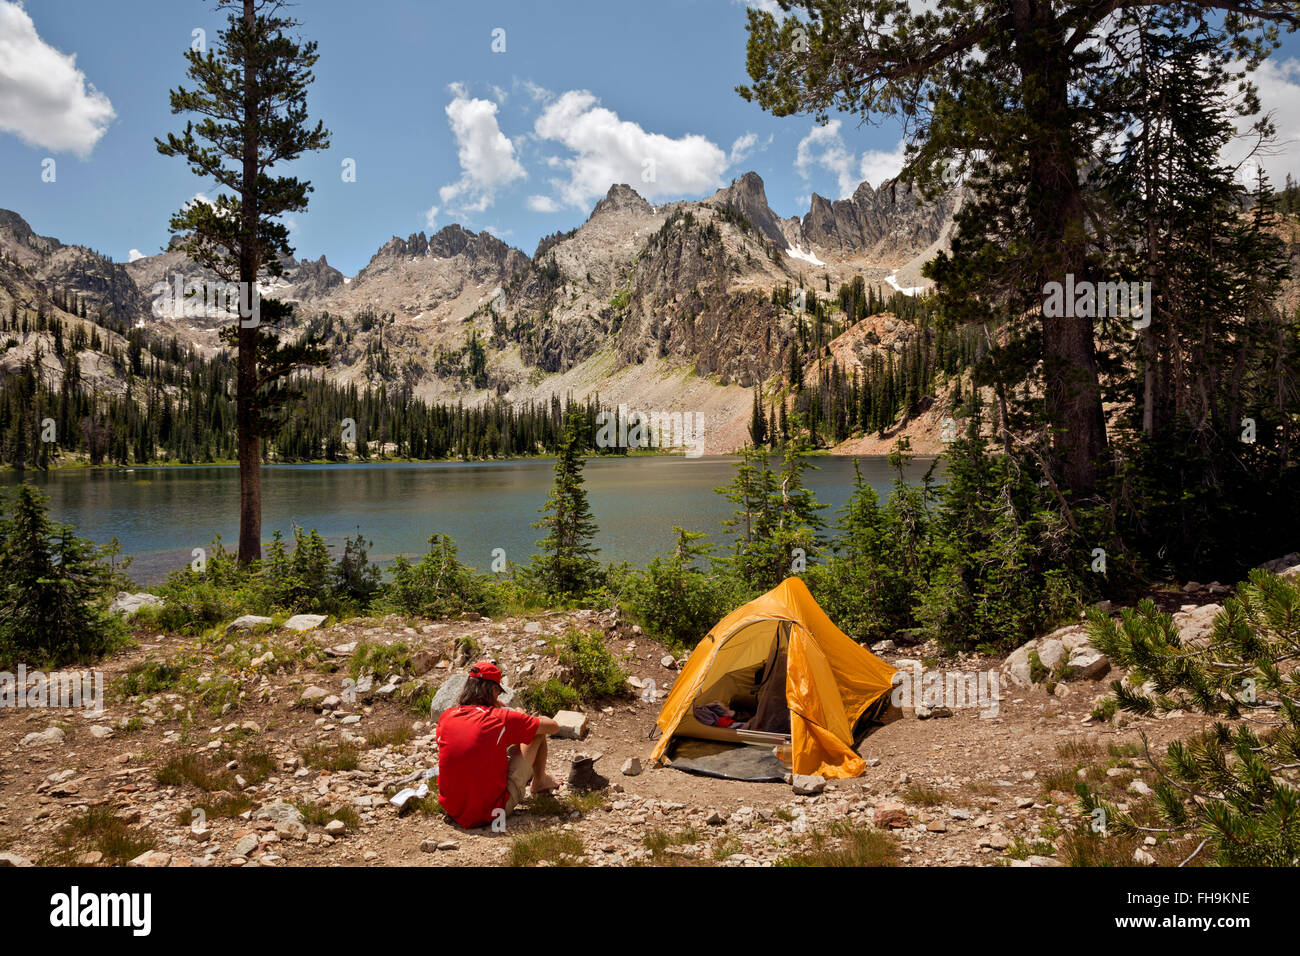 ID00402-00...IDAHO - Campsite at Alice Lake in the Sawtooth Wilderness Area. (MR) - Stock Image